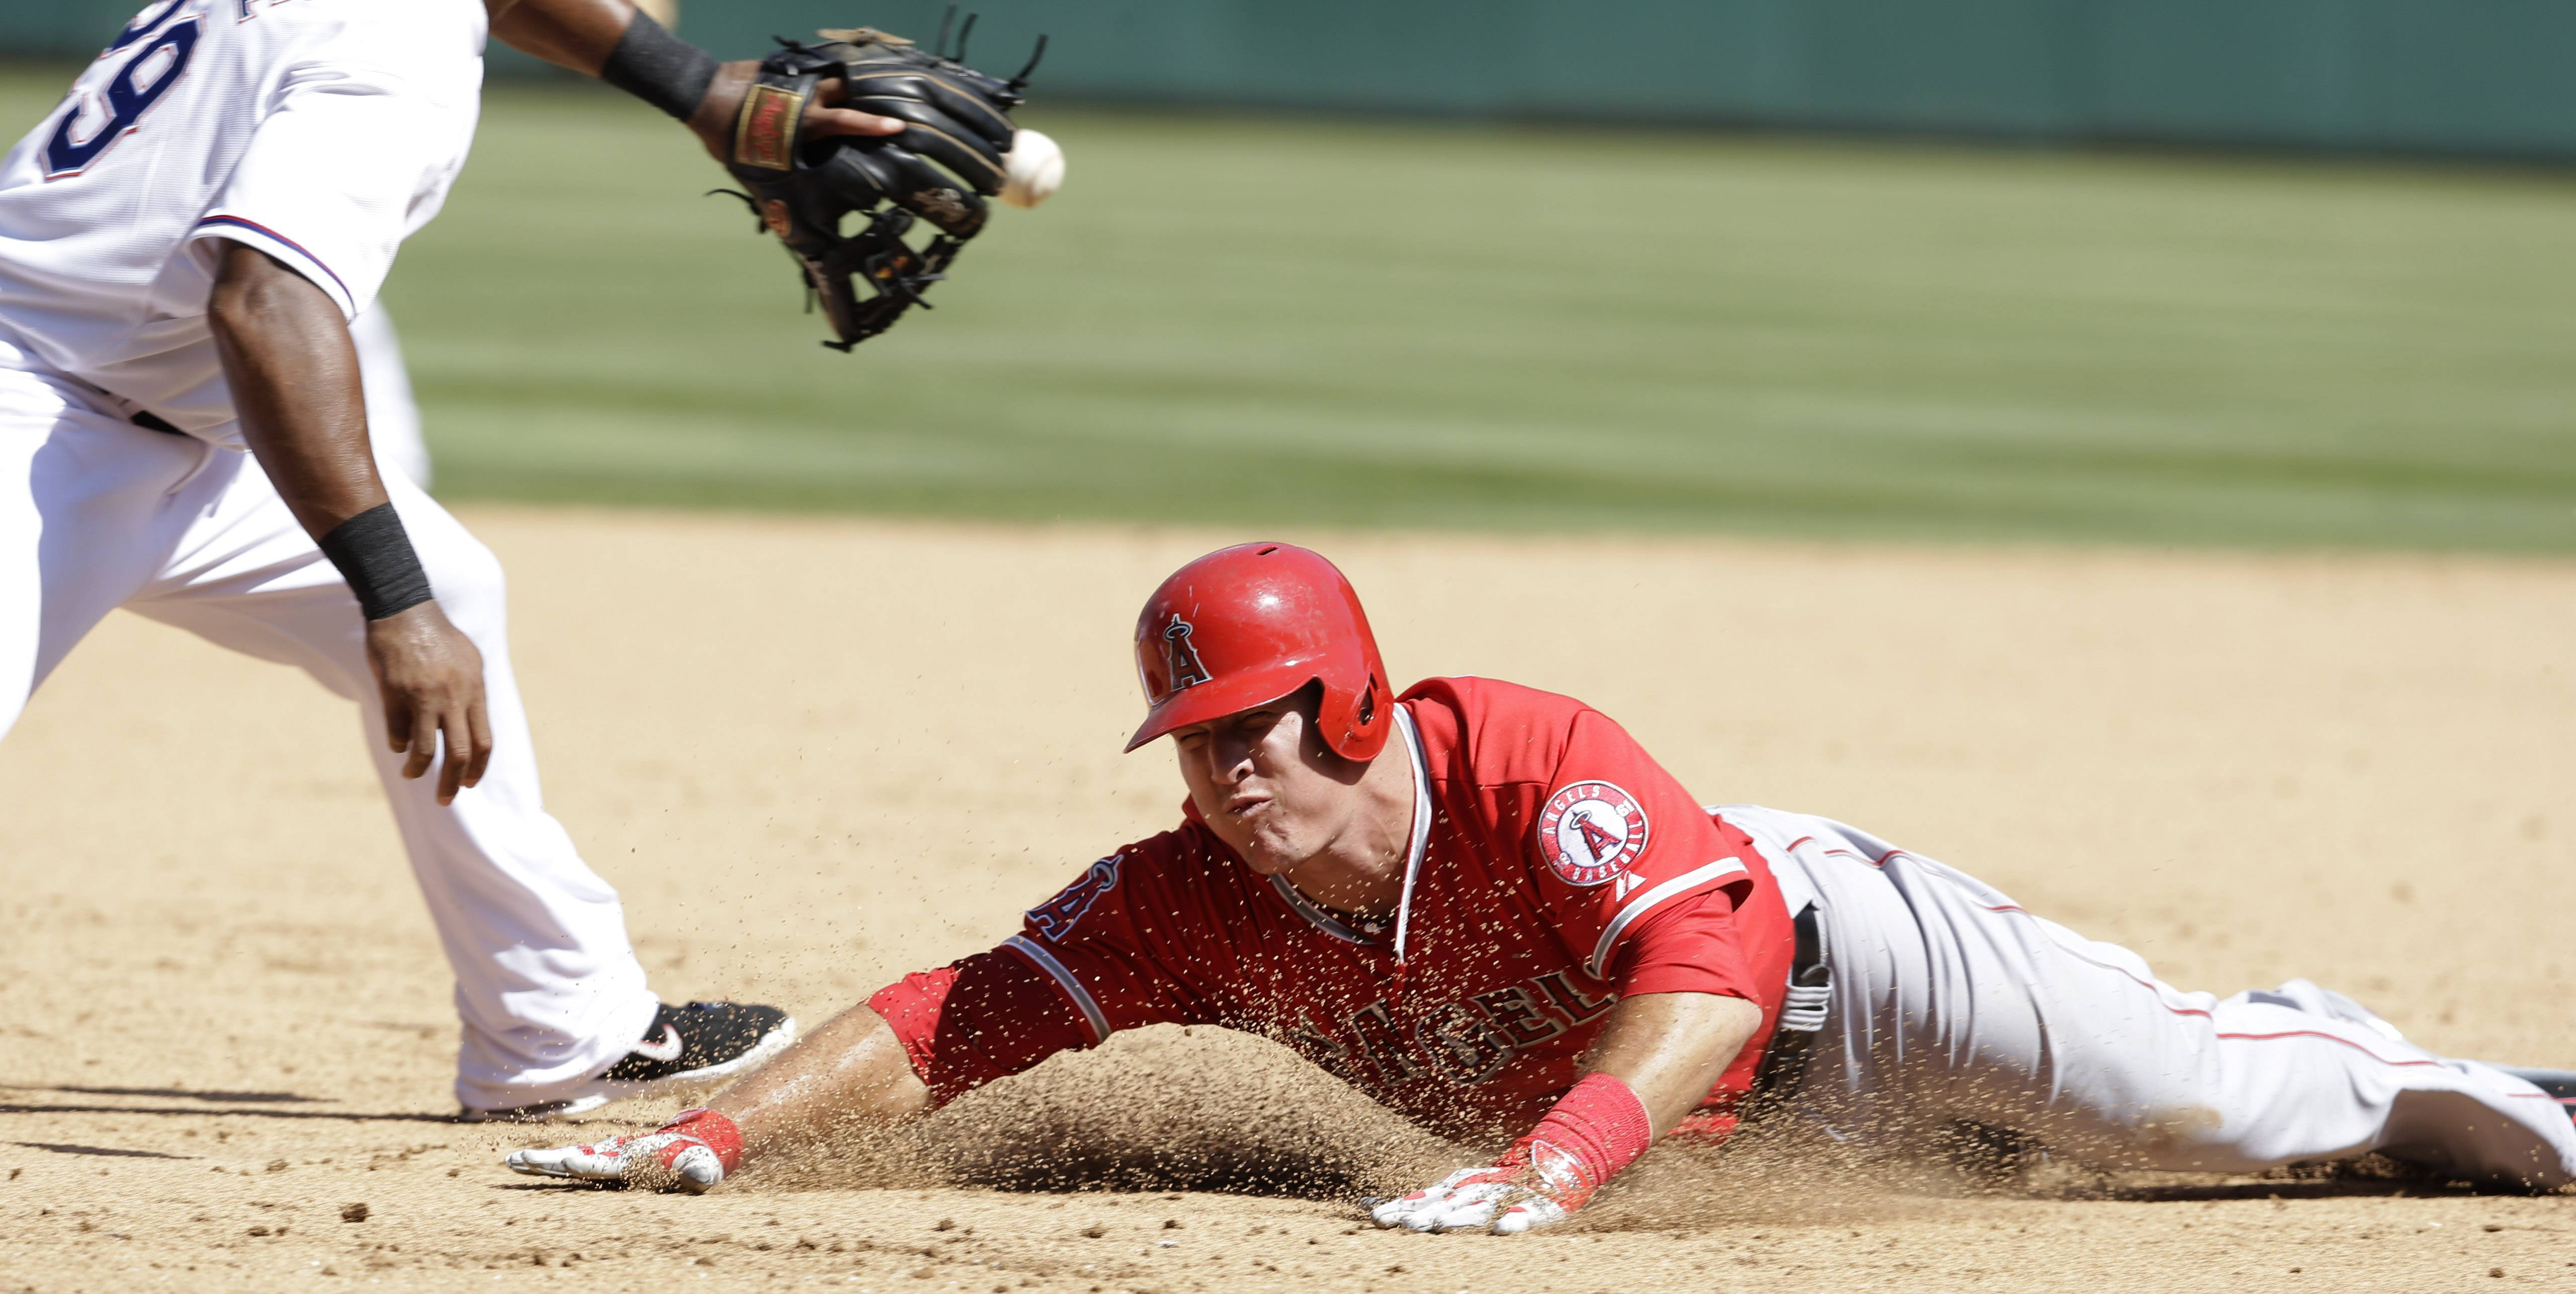 At the all-star break, the Angels' Mike Trout is hitting .310 with 22 HRs and 73 RBI.